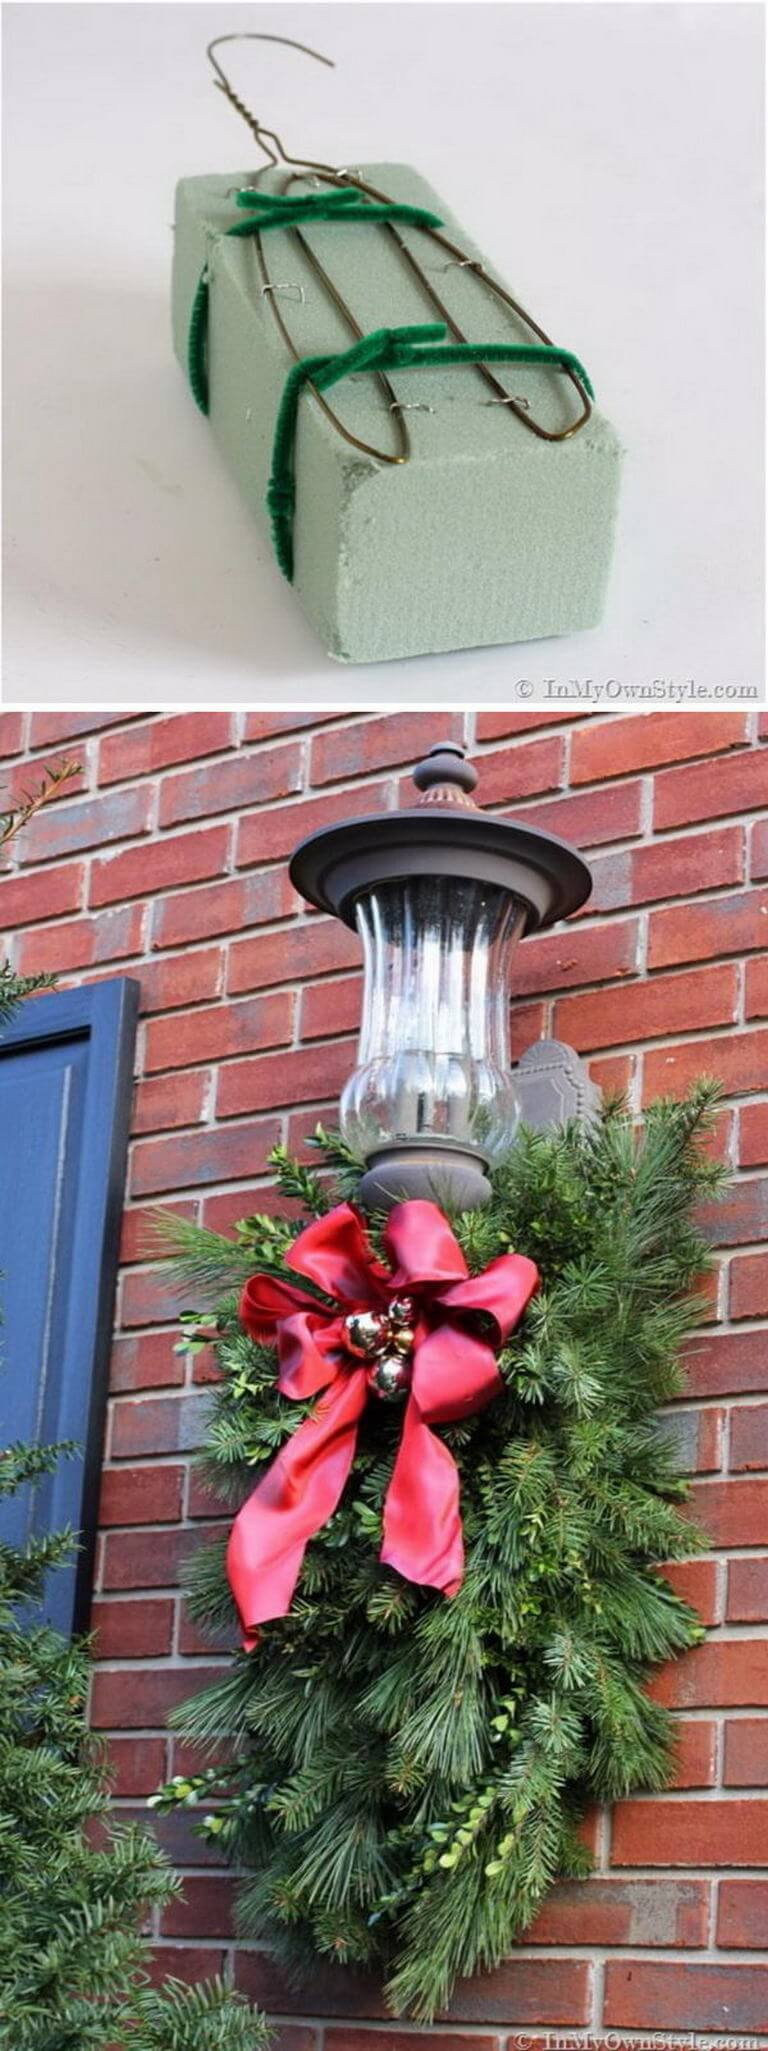 Best ideas about DIY Christmas Decorations Outdoors . Save or Pin 35 Best Christmas DIY Outdoor Decor Ideas and Designs for Now.